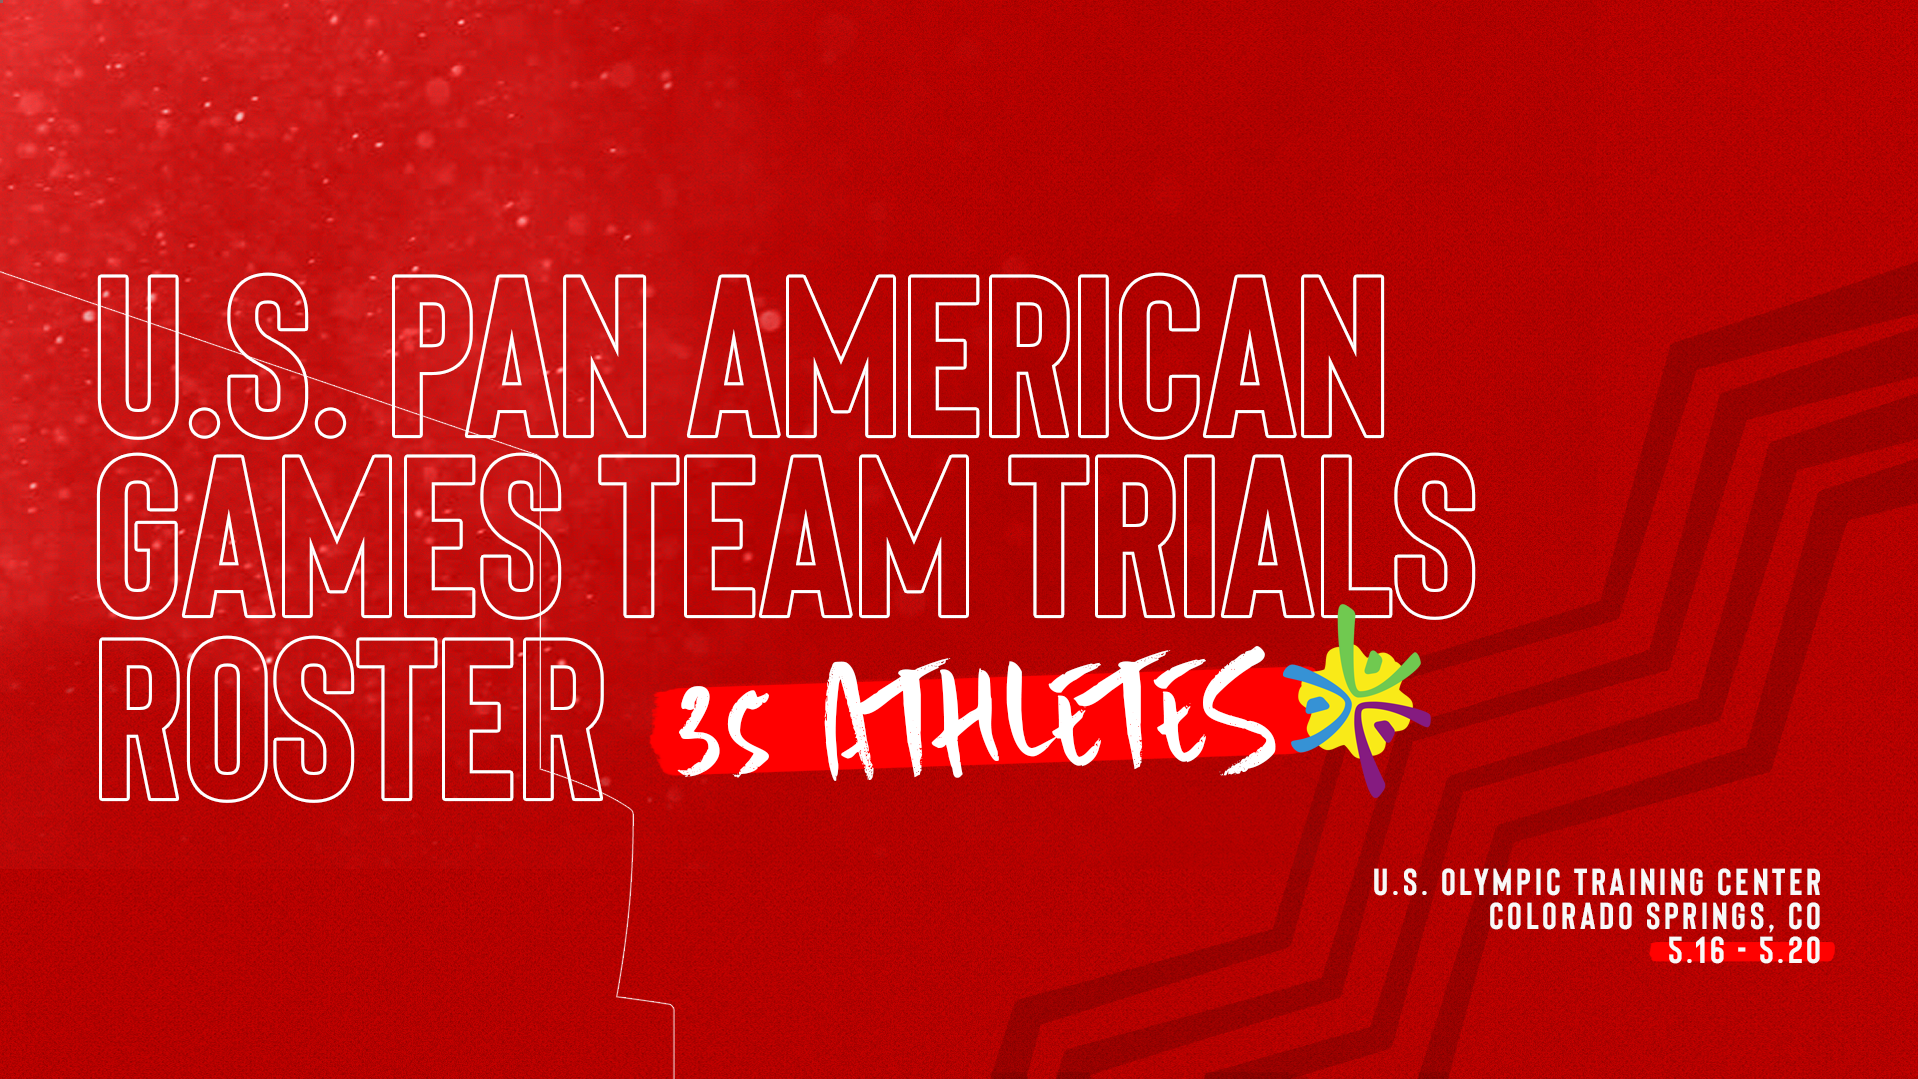 2019 U.S. Pan American Games Women's Basketball Team Trials